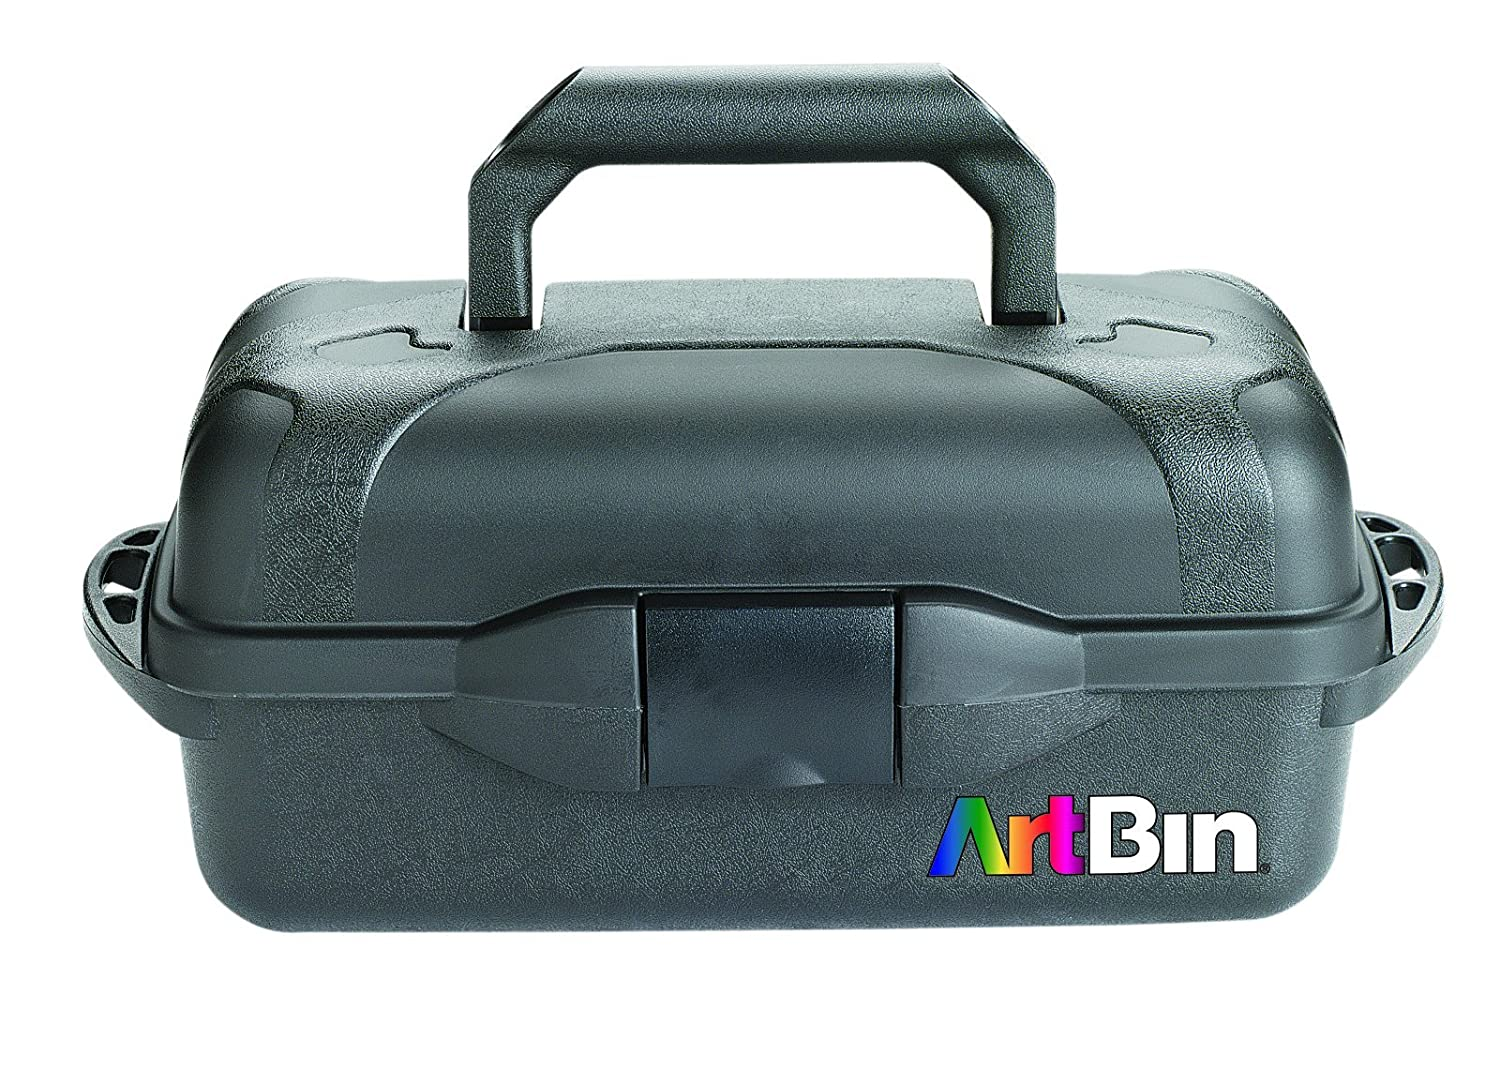 ArtBin Essentials-1 Tray Box - Black, 8512MB